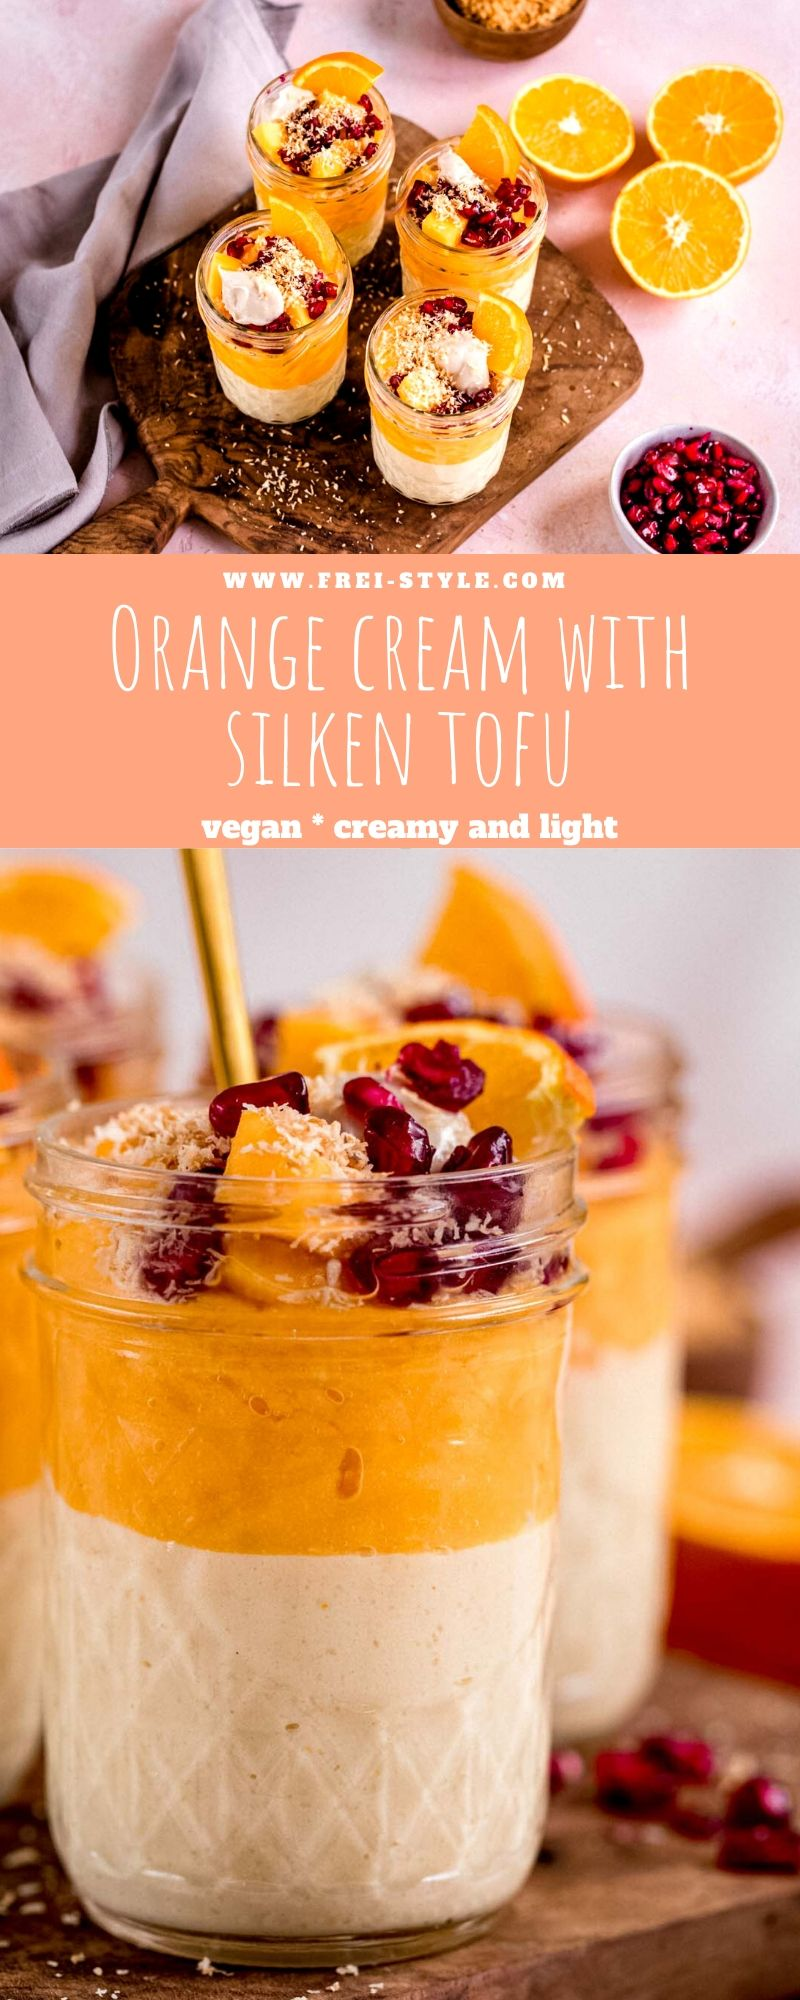 Orange cream with silken tofu